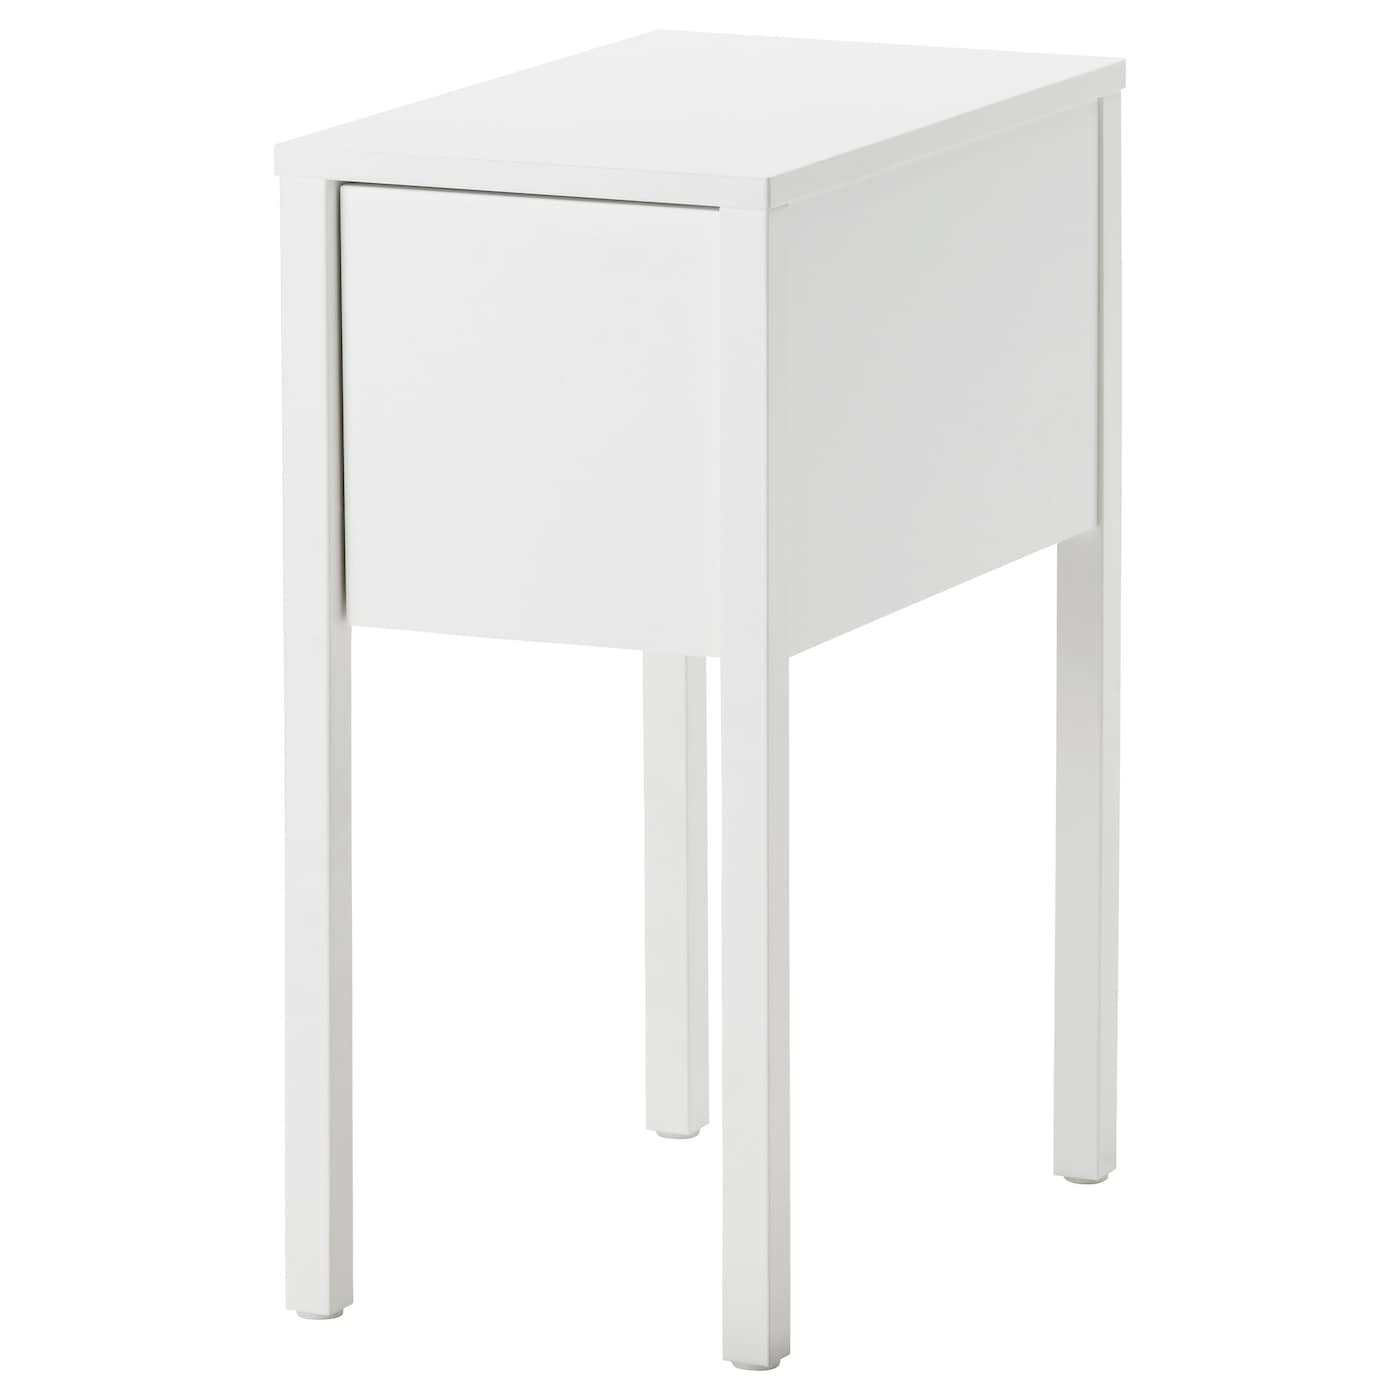 Nordli bedside table white 30x50 cm ikea - Petite table de chevet ...